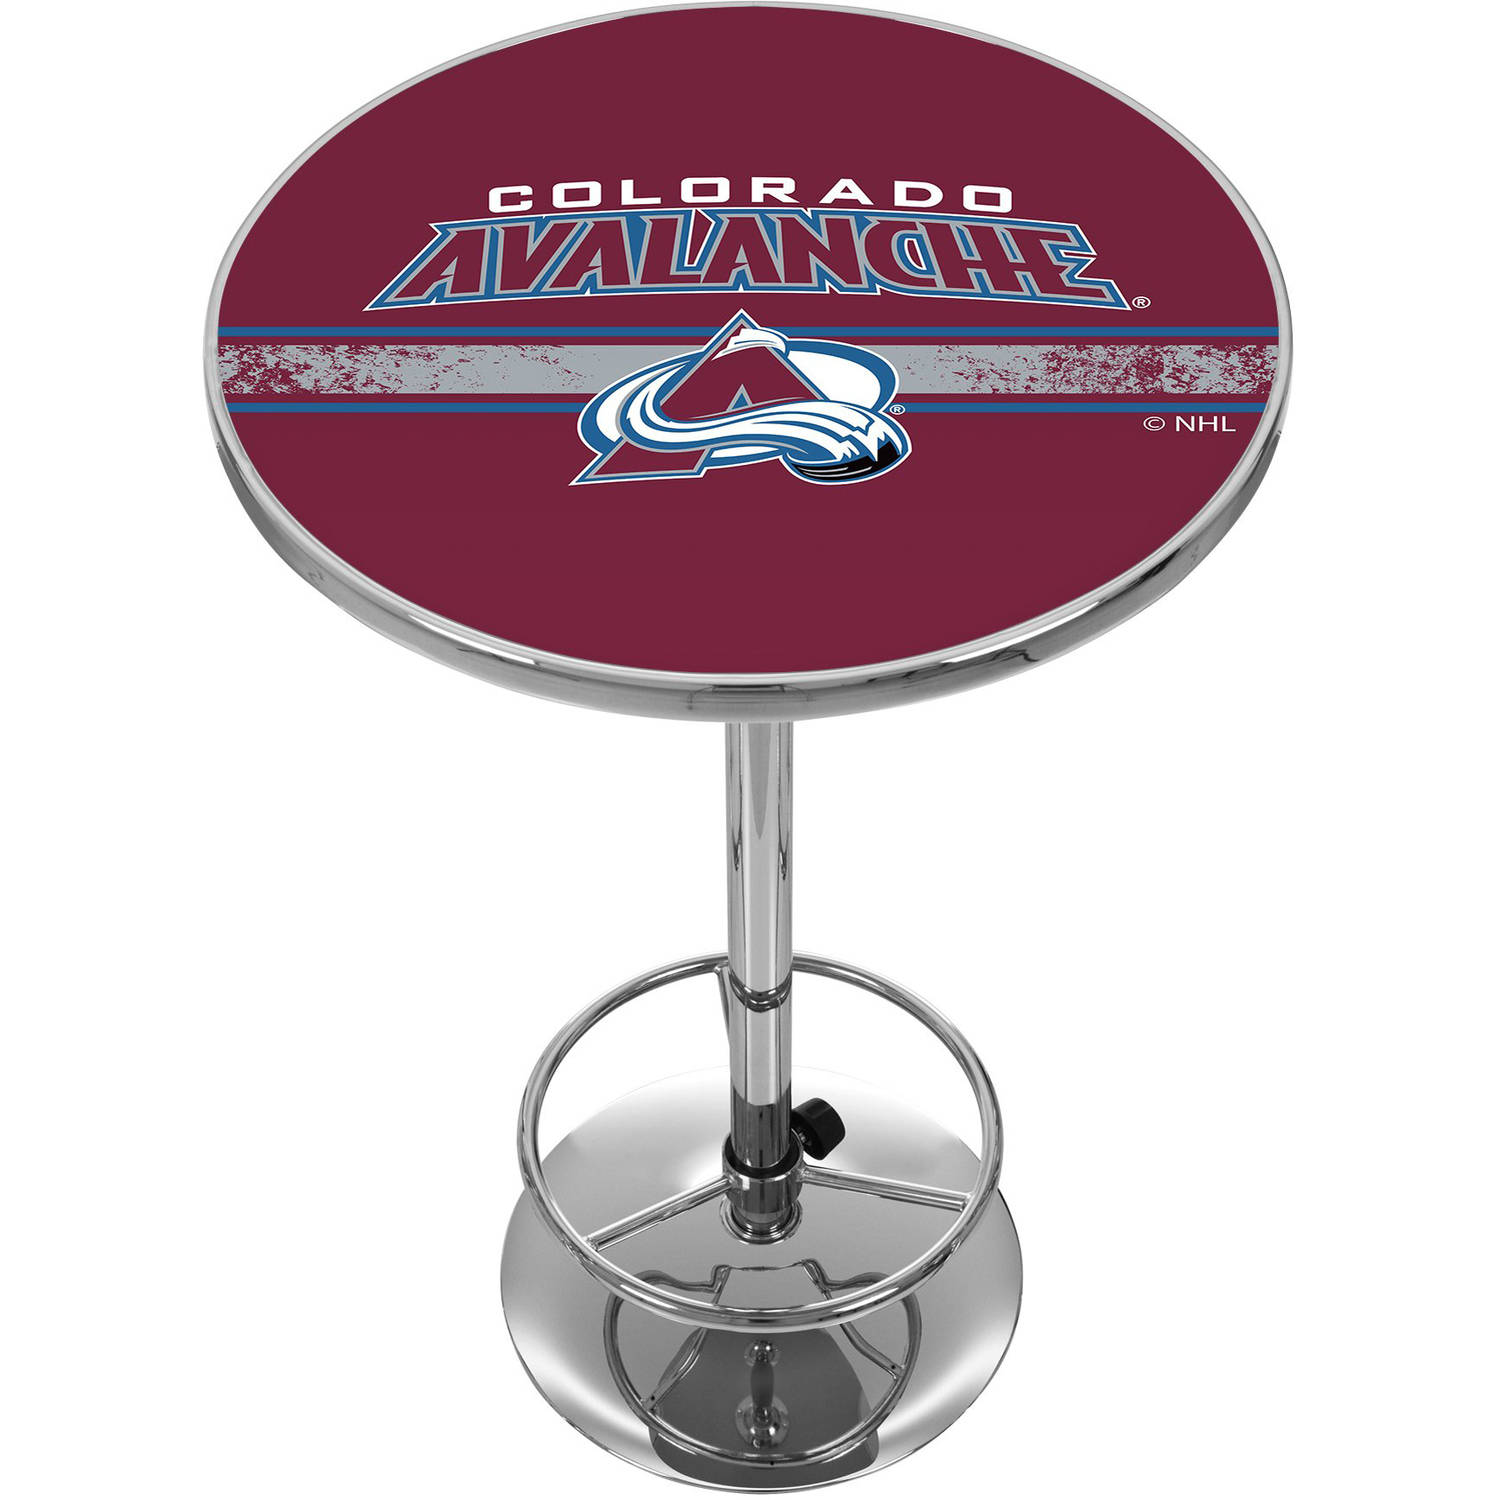 NHL Chrome Pub Table, Colorado Avalanche